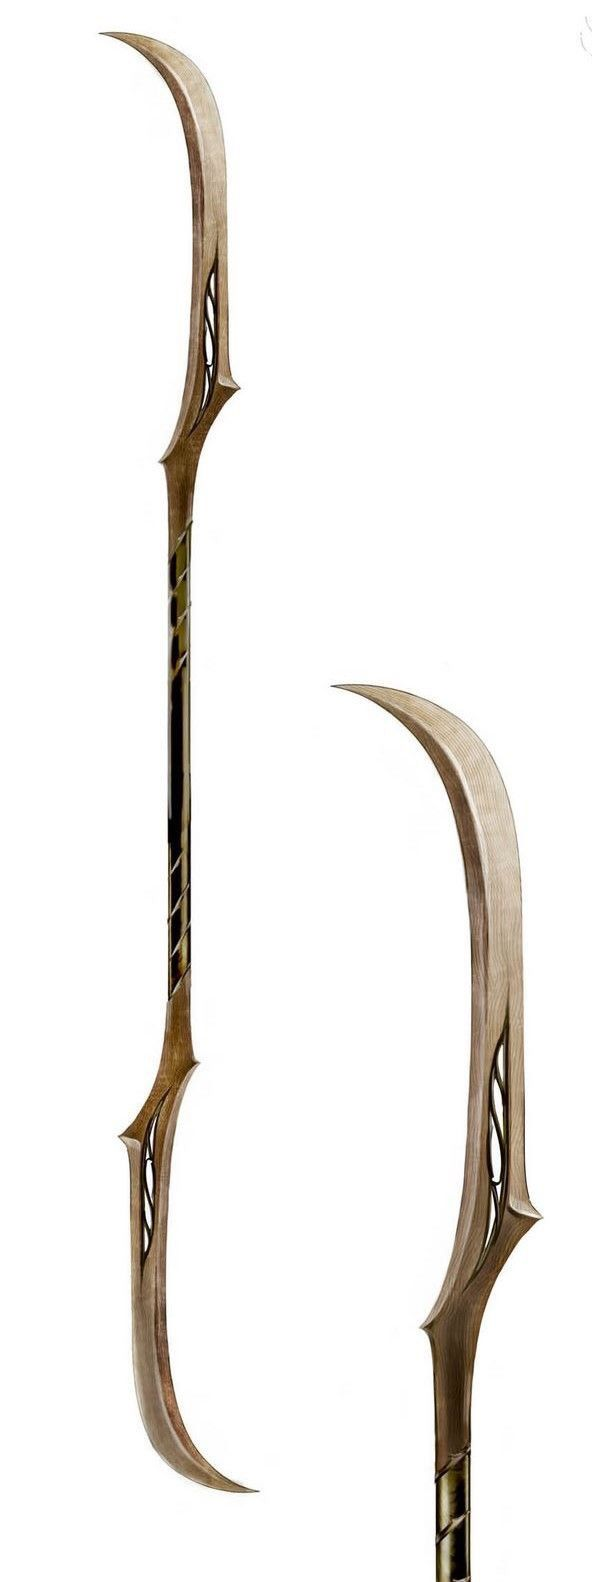 Double ended sword/staff -- I have no idea what it's called